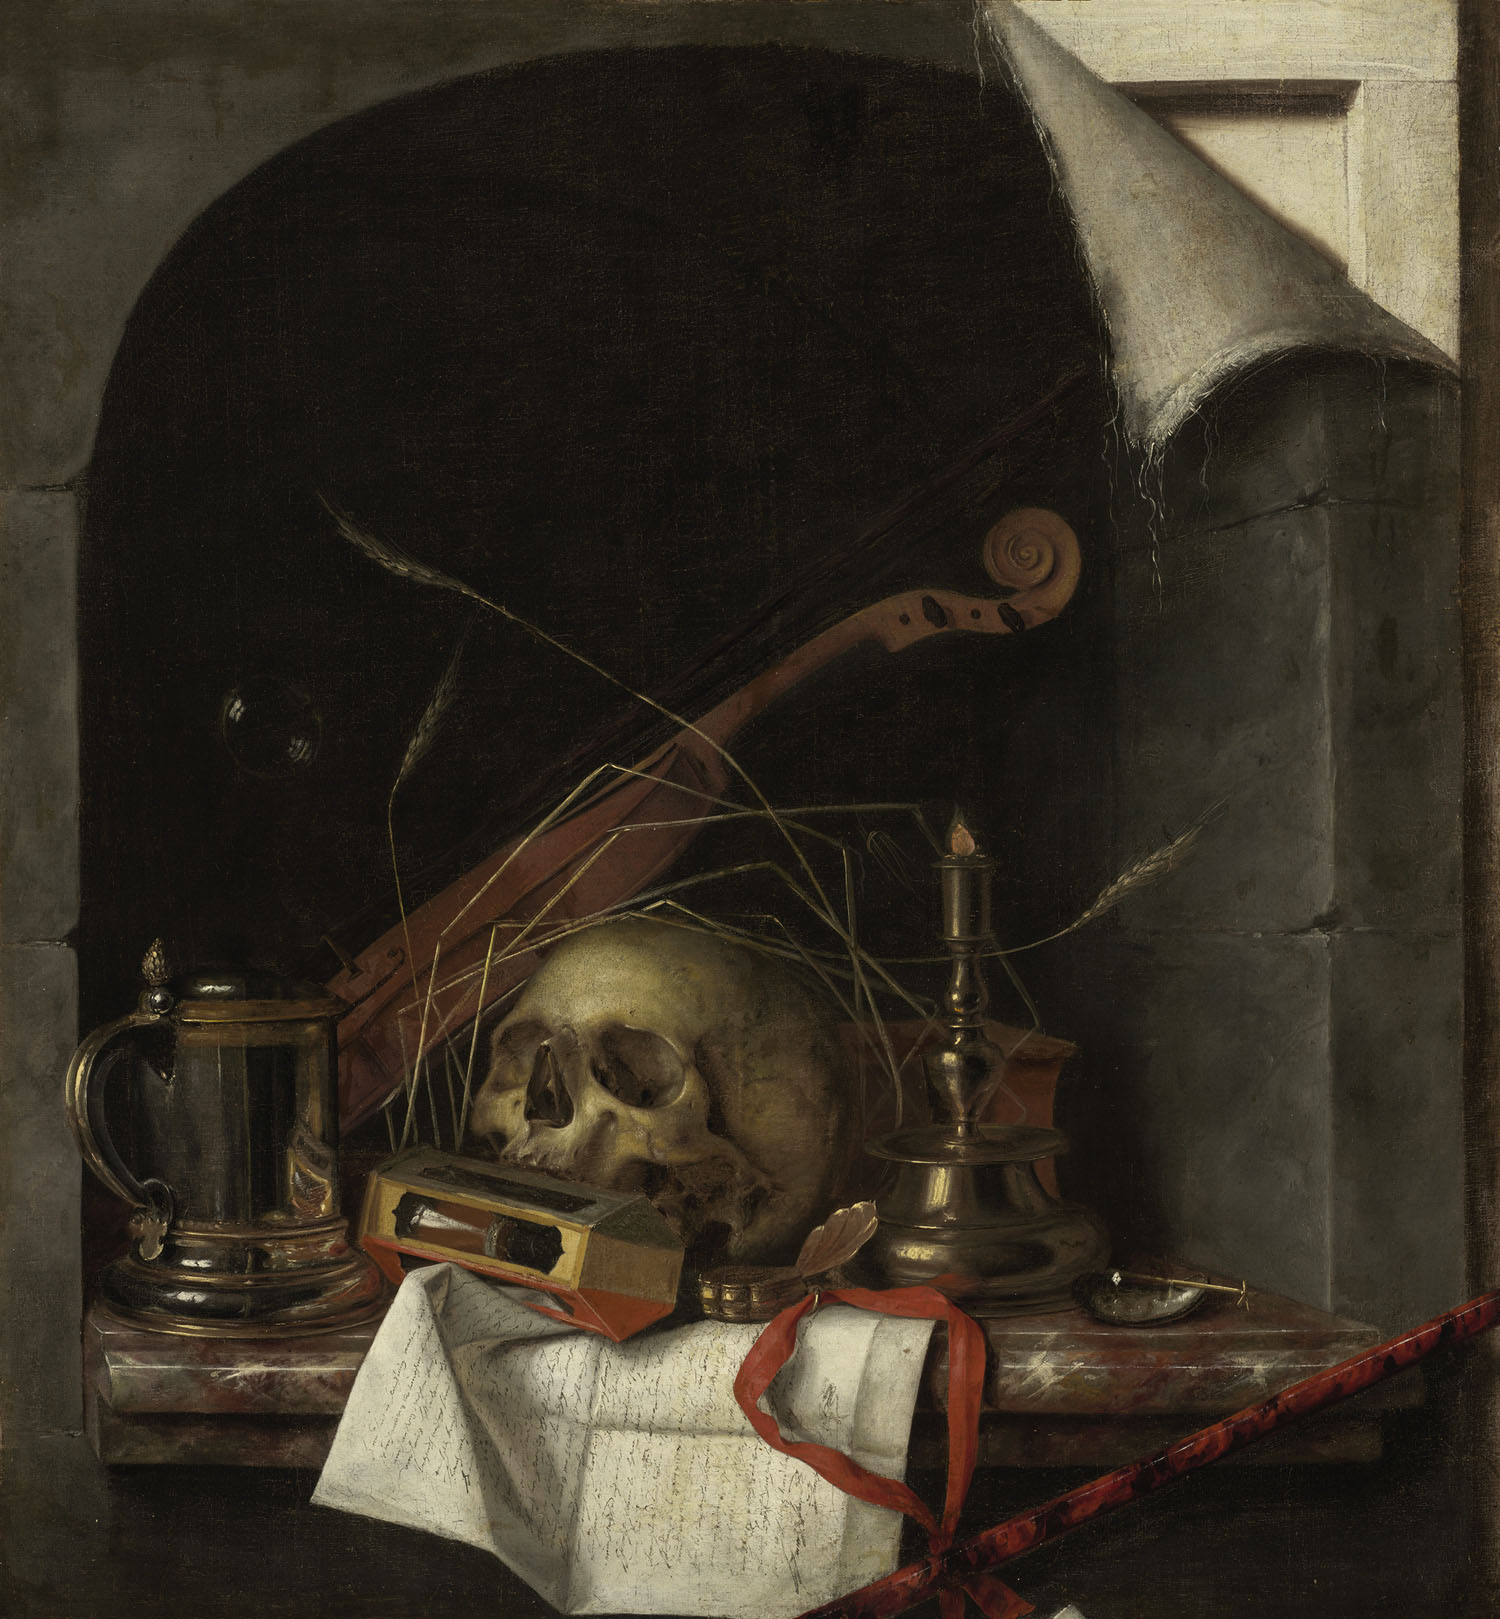 'Vanitas Still Life' by Cornelis Norbertus Gijsbrechts. | © 2011 MUSEUM OF FINE ARTS, BOSTON